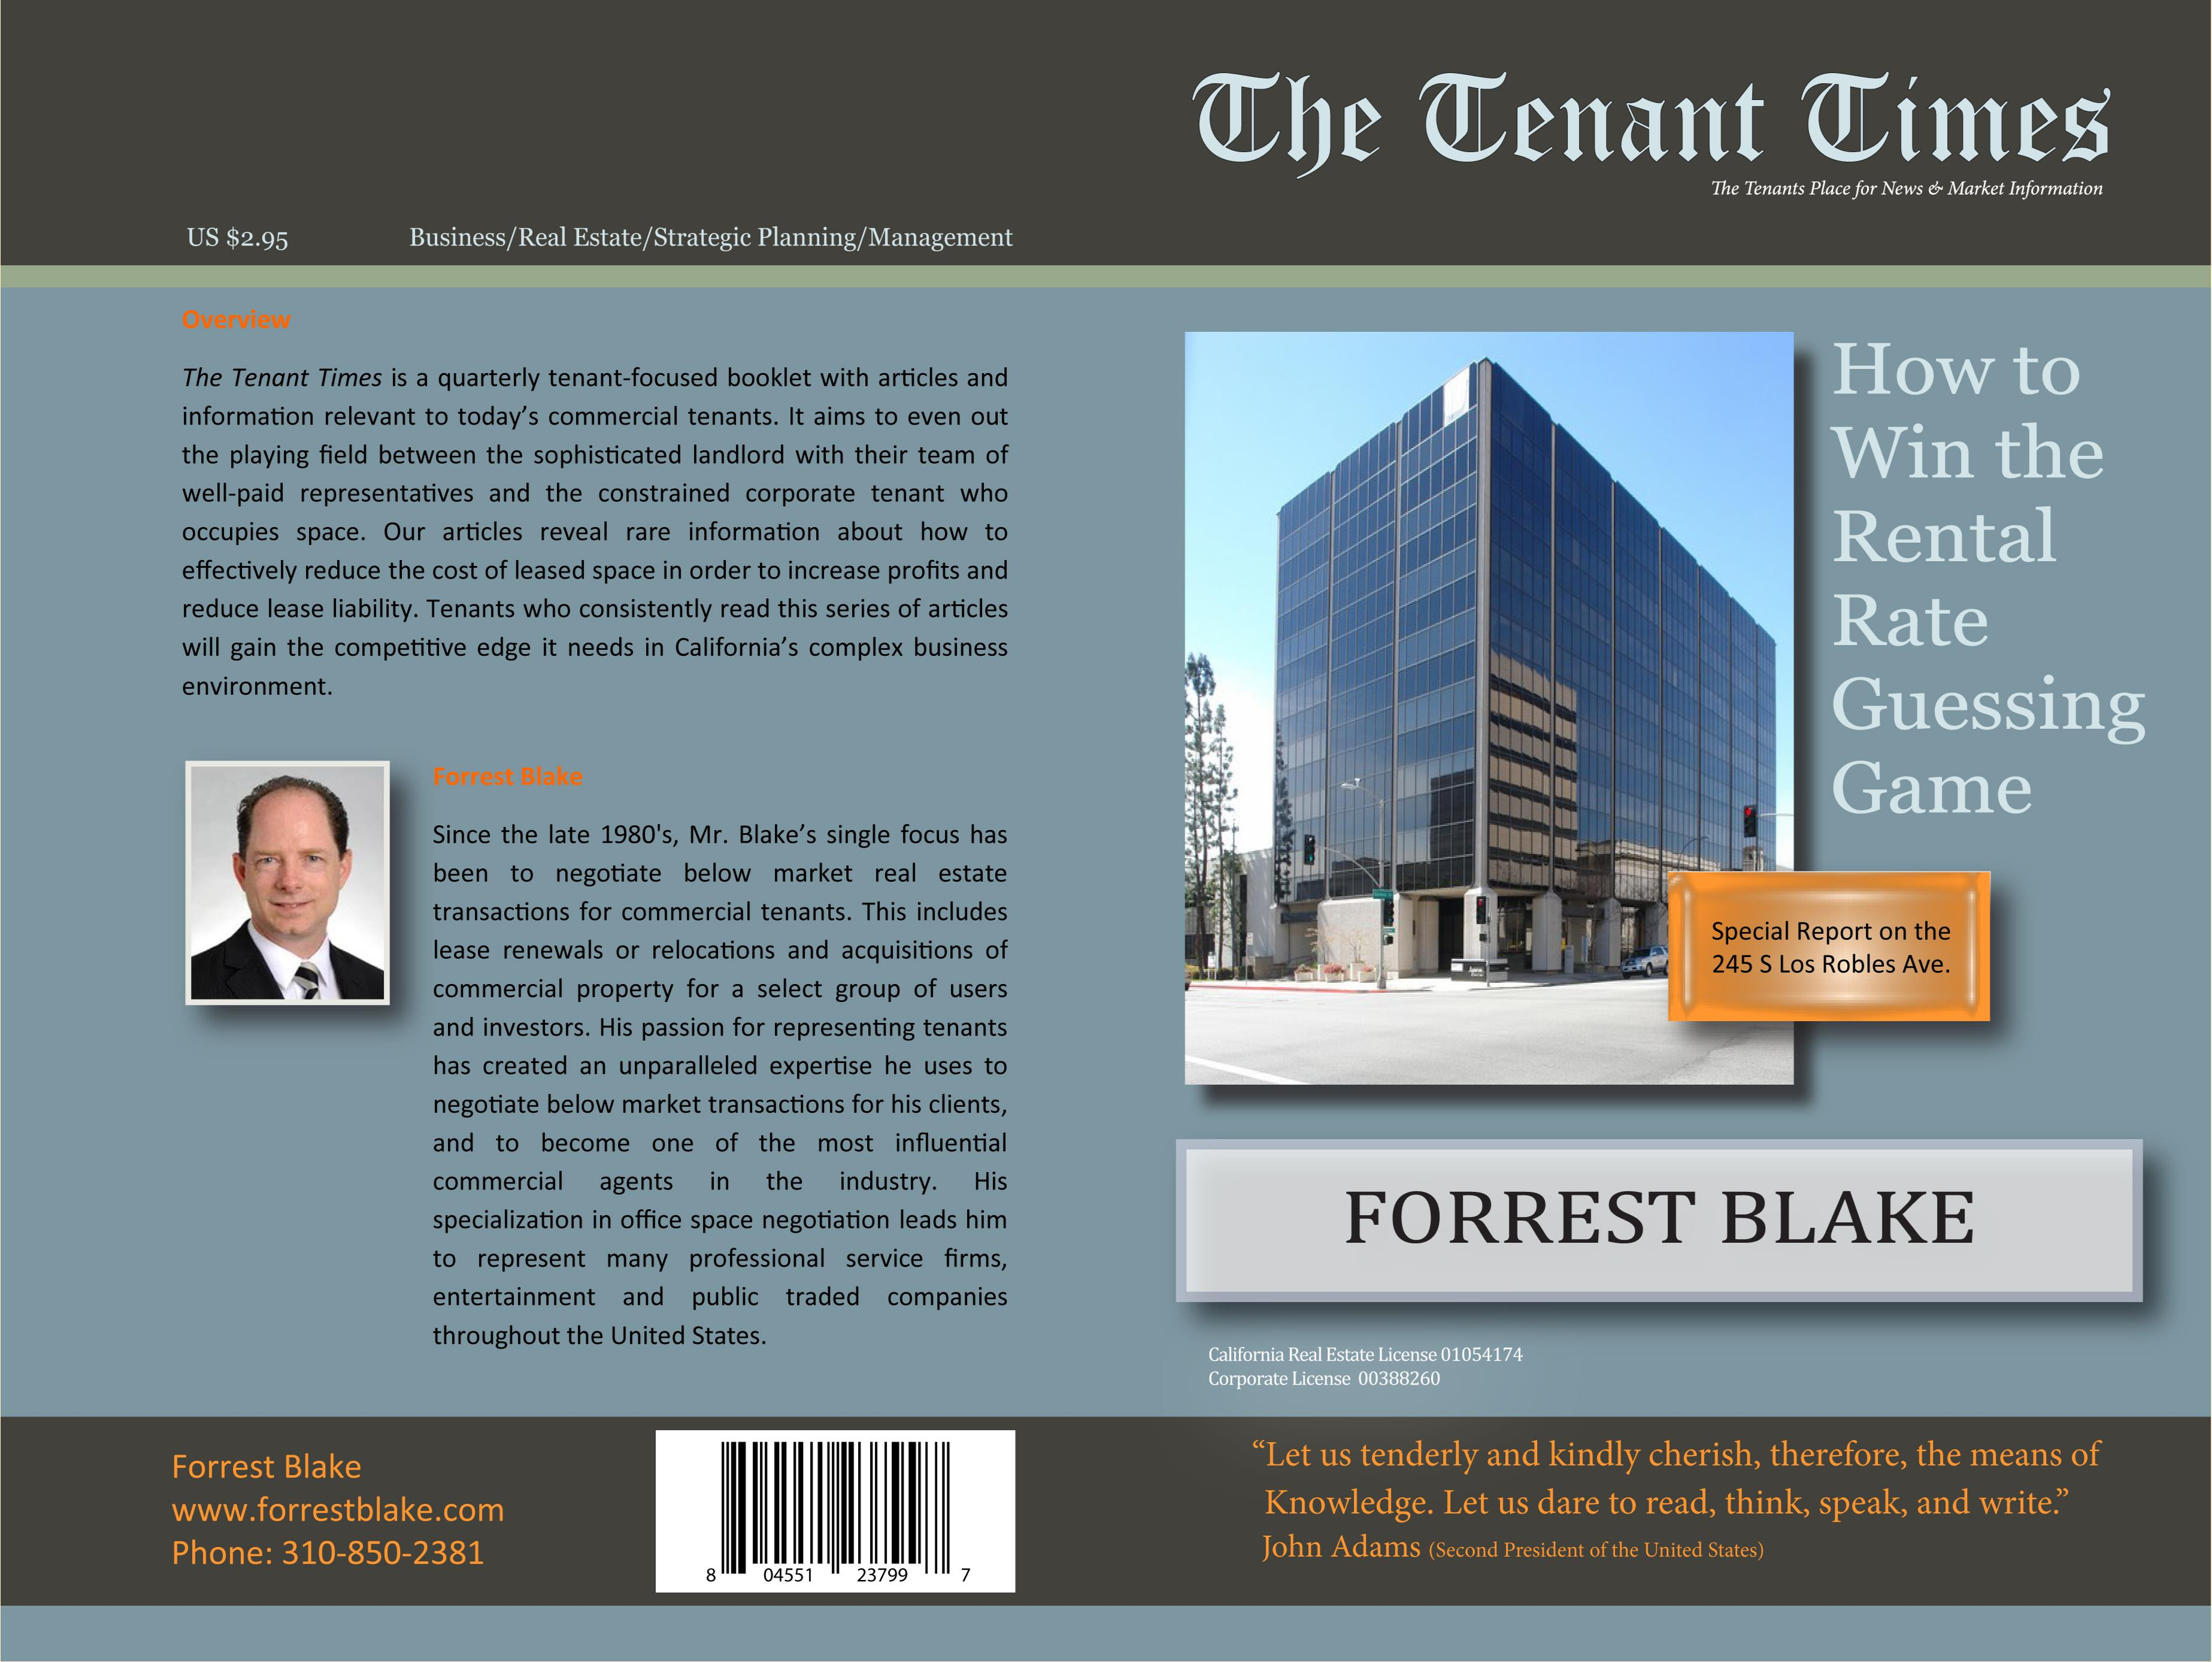 2Q Tenant Times 245 S Los Robles cover image